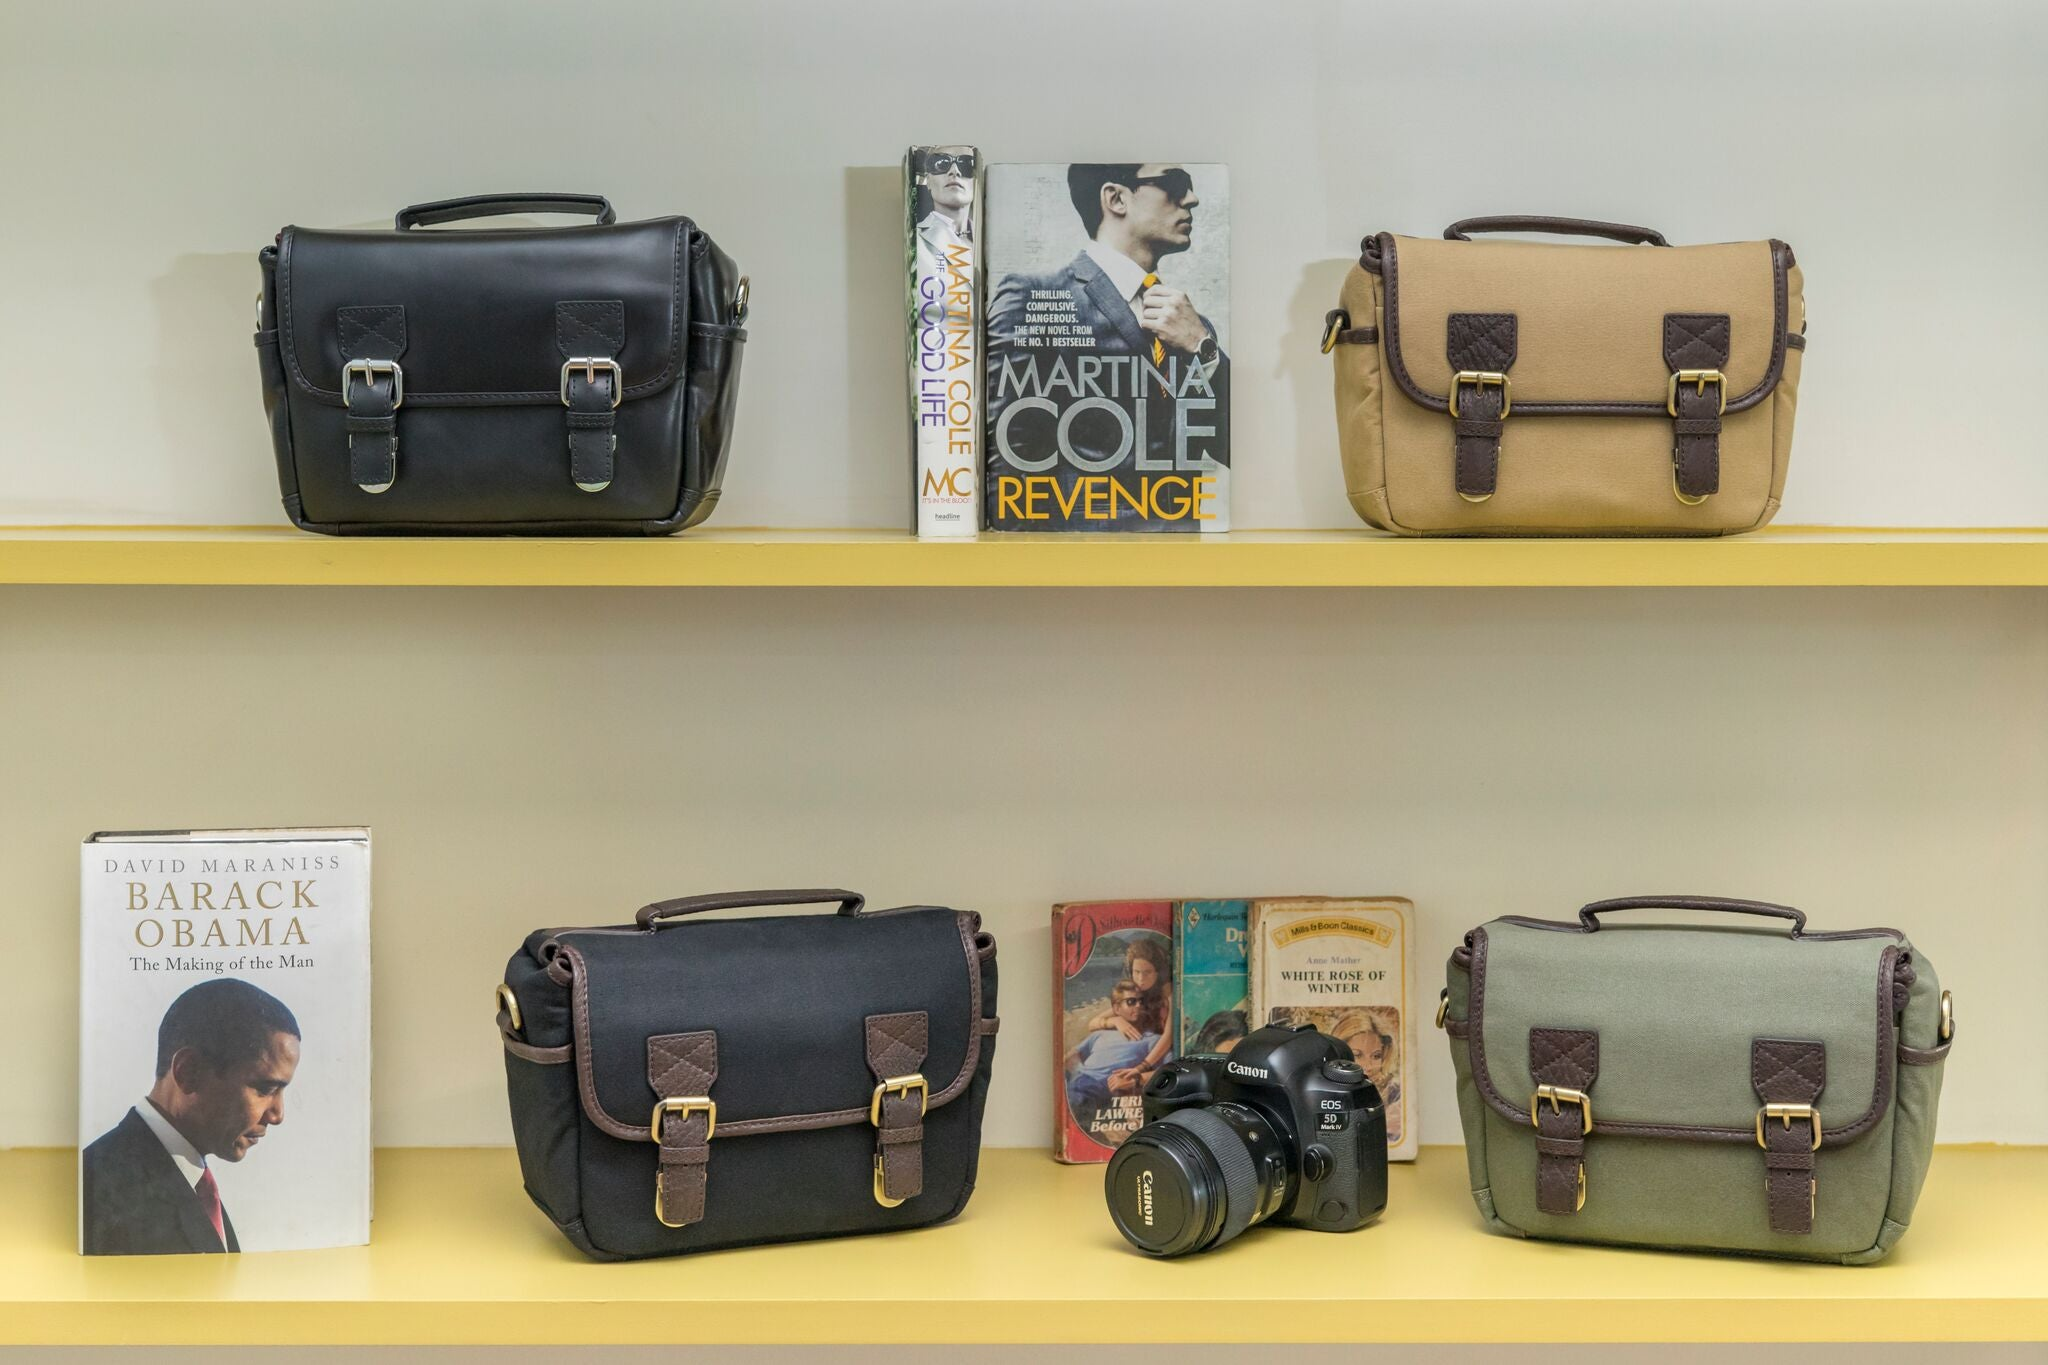 K2 is a Stylish Mini Messenger Bag for the Compact Shooter. The Phoblographer